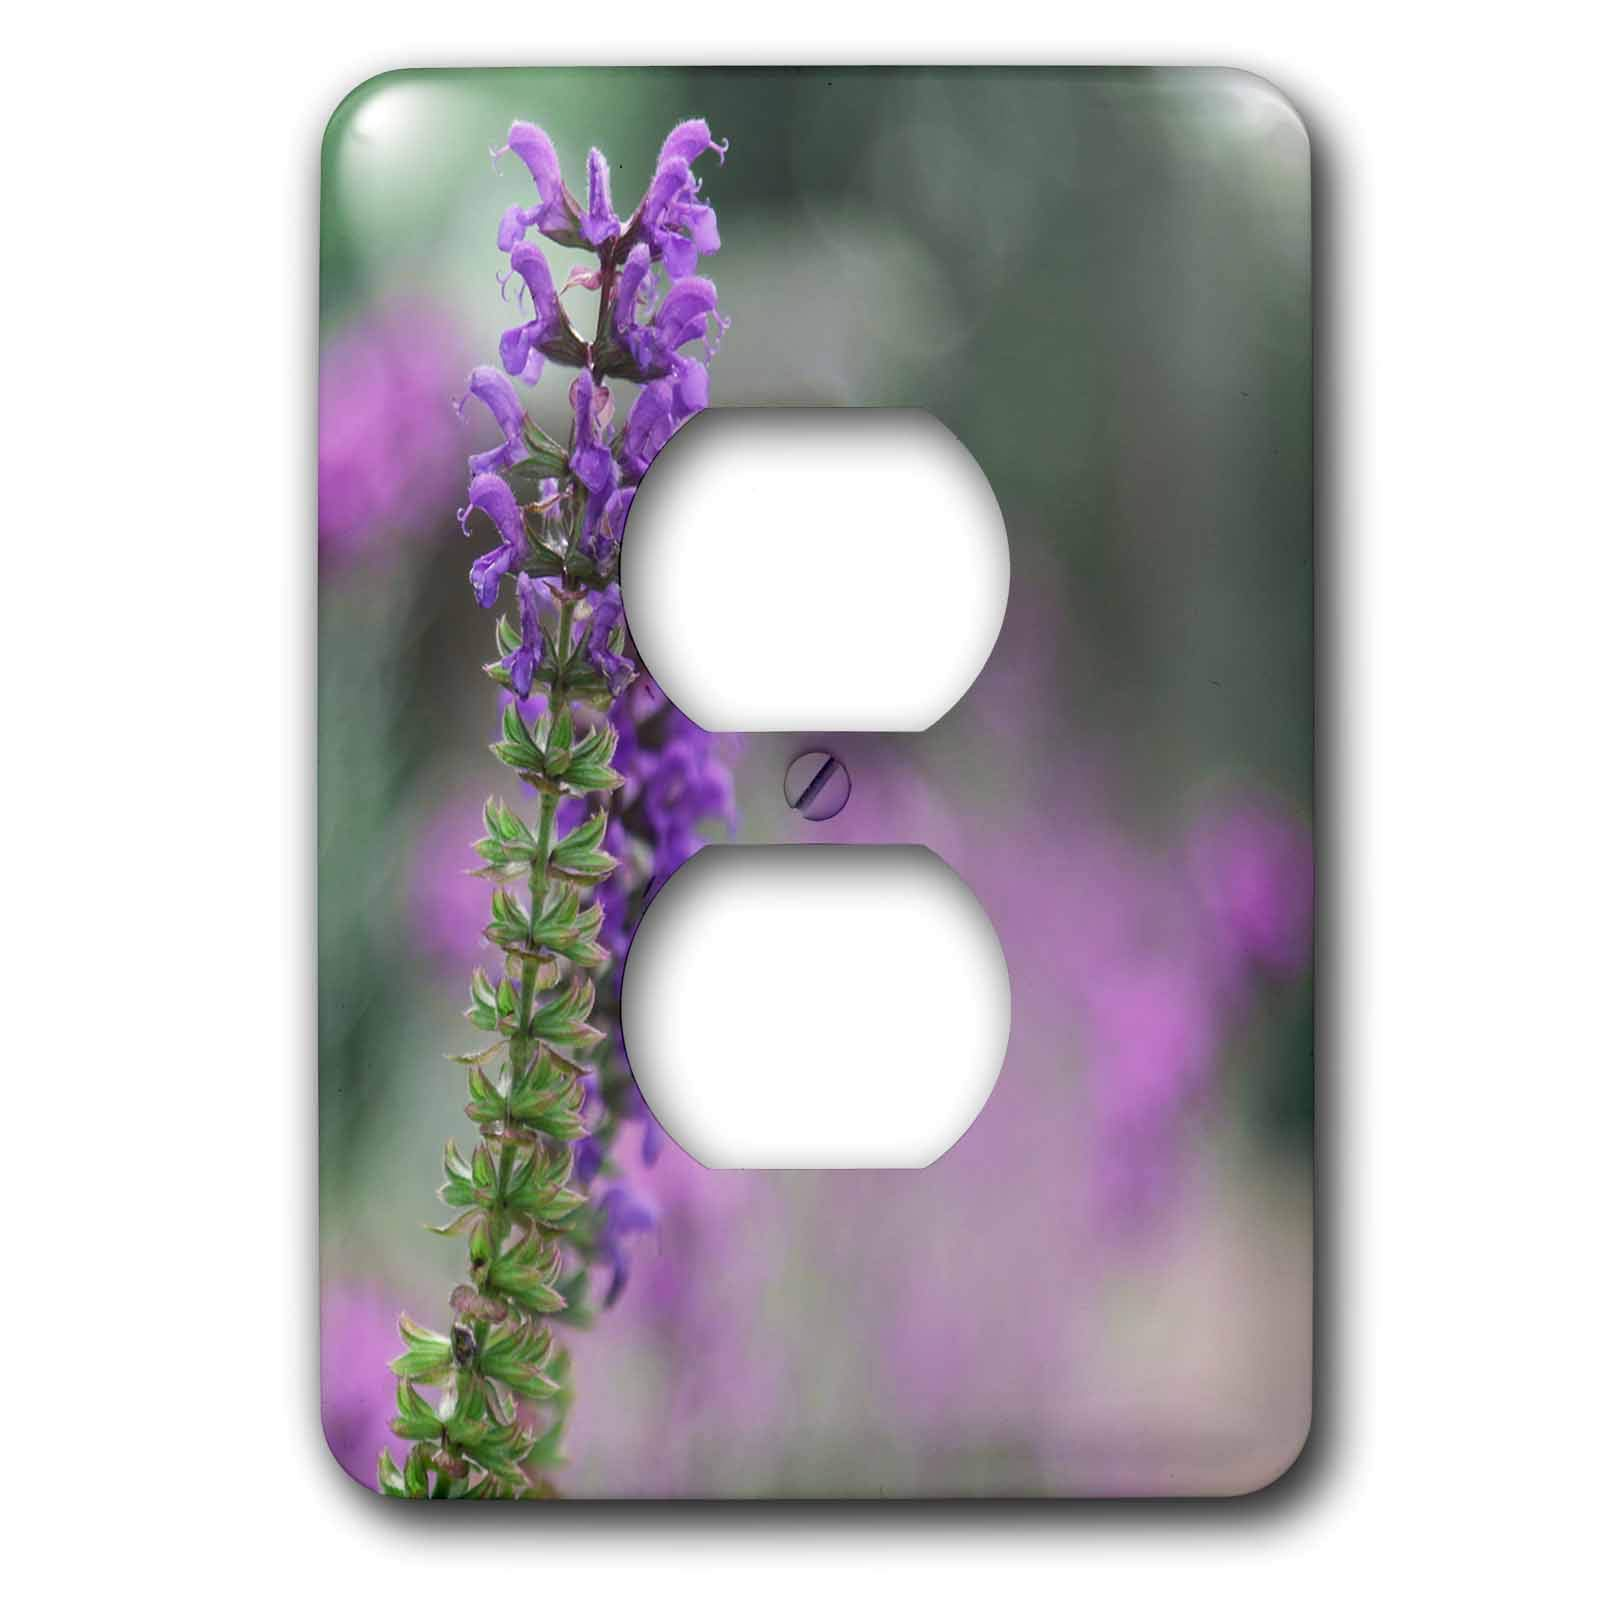 3dRose Stamp City - flowers - Photograph of purple salvia plant which is very popular with the bees. - Light Switch Covers - 2 plug outlet cover (lsp_290782_6)